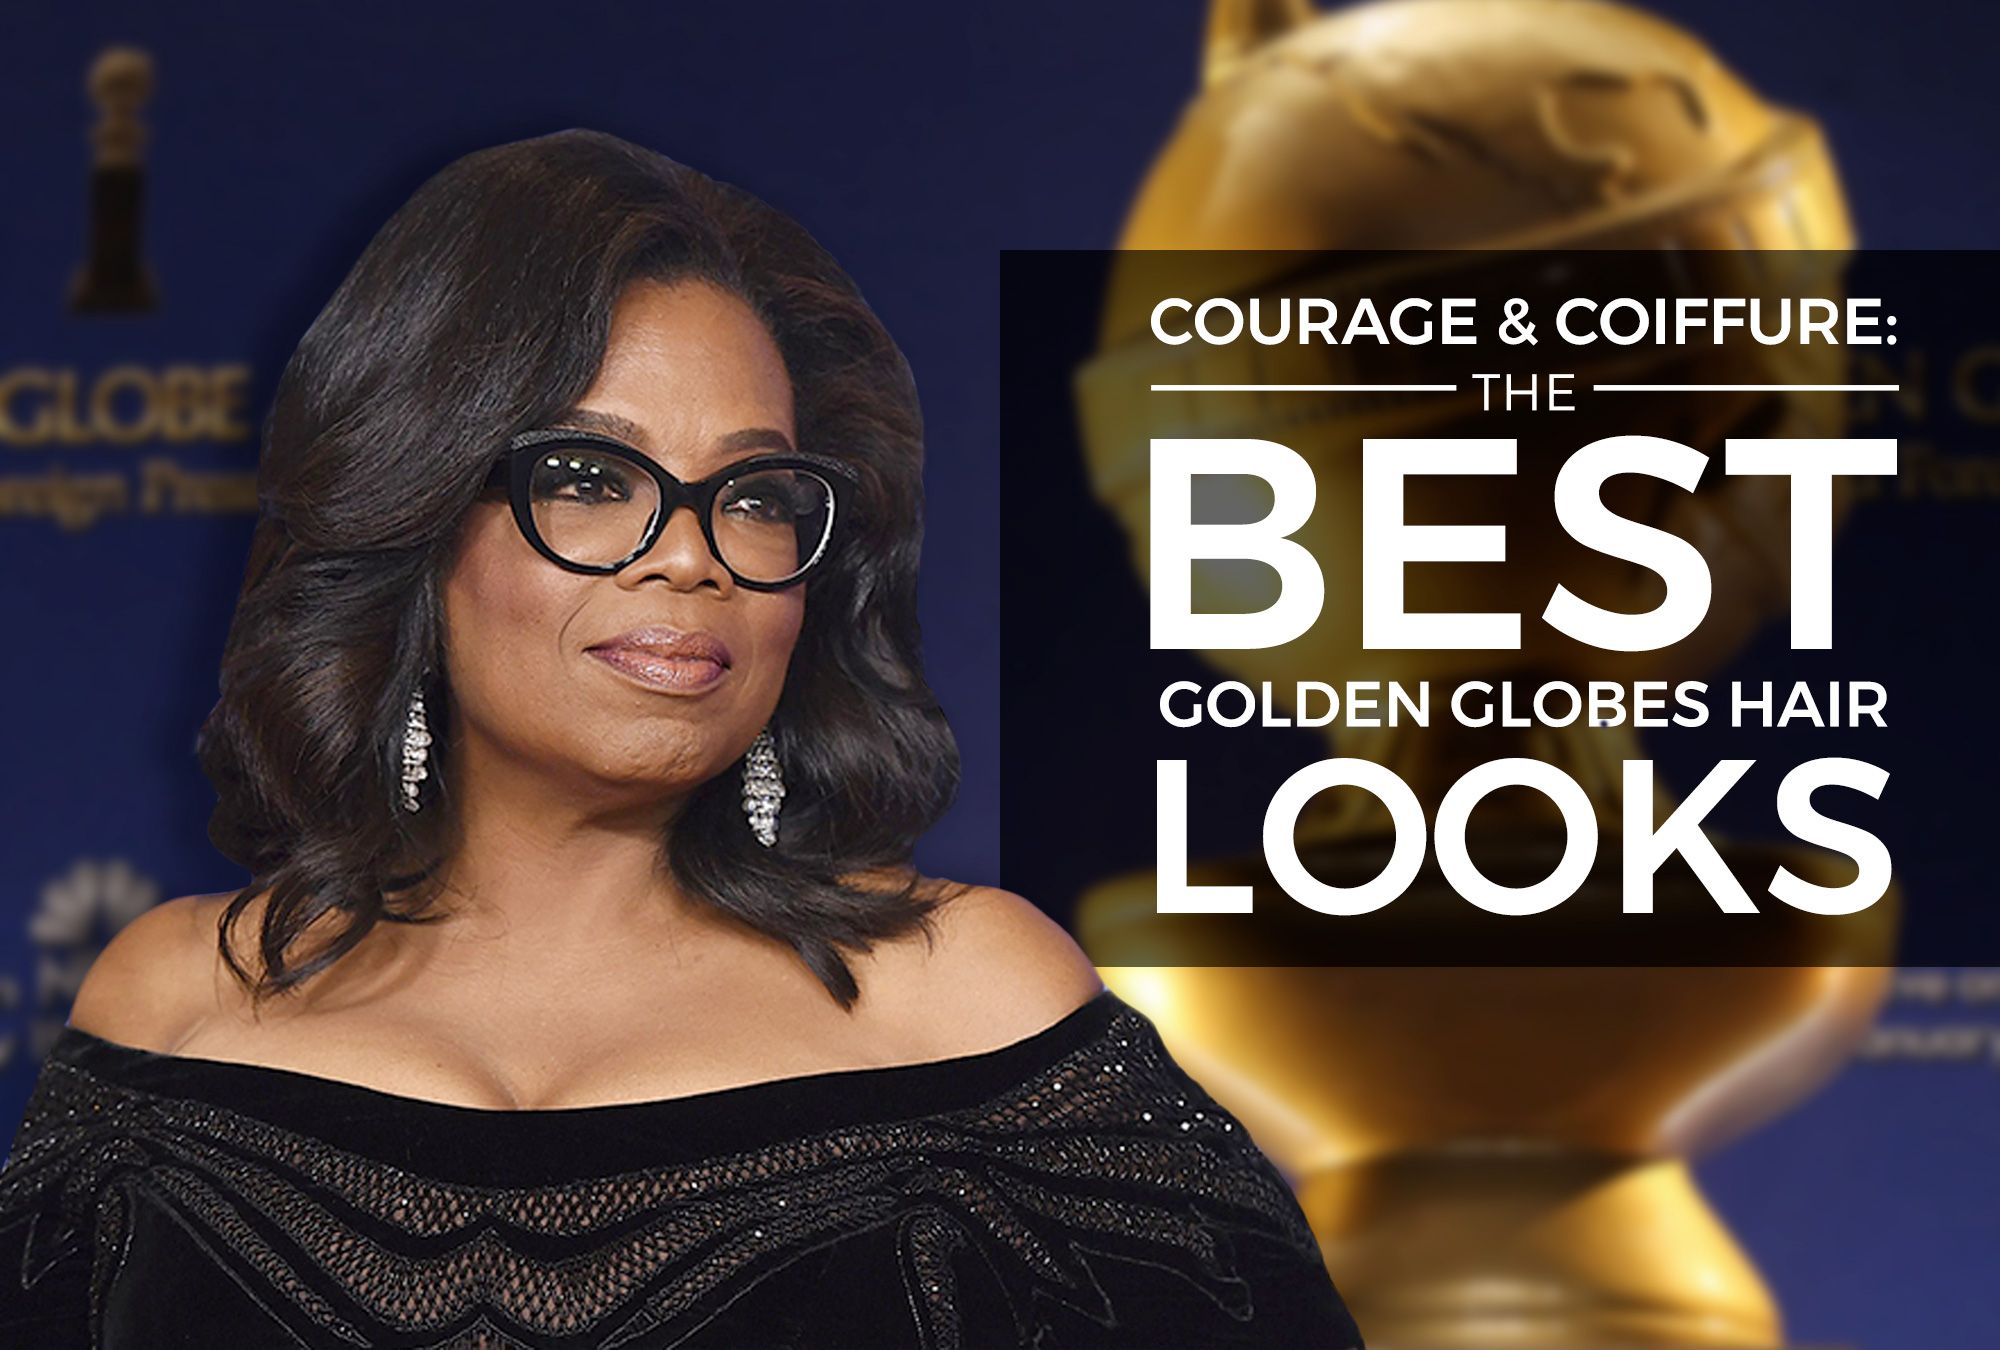 Courage & Coils: Celebrating The Blackest Golden Globes Yet